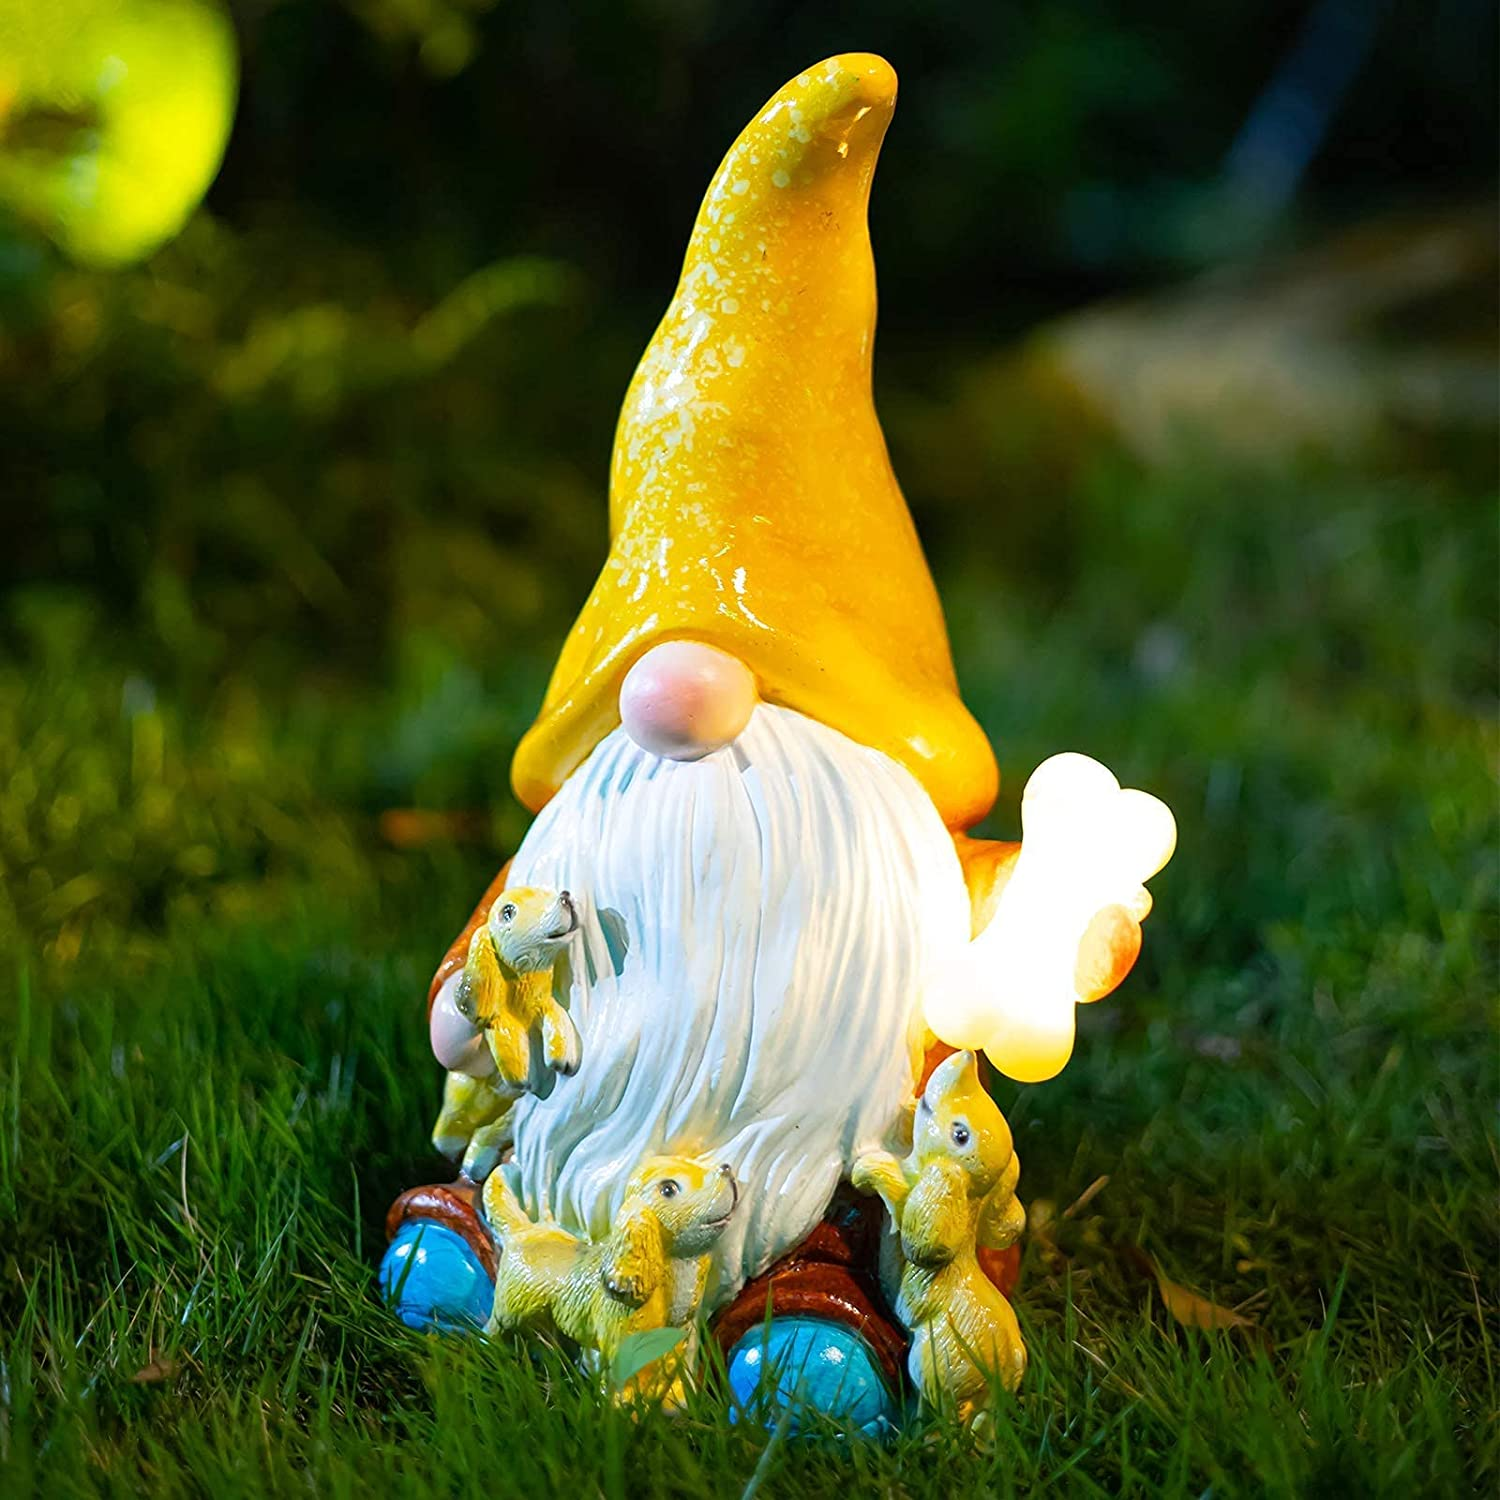 FLJZCZM Garden Gnome Statue, Solar Light Patio Decor Gnomes Play with Dogs Resin Yard Dwarf Figurine Outdoor Ornaments, Gifts Powered LED Lights